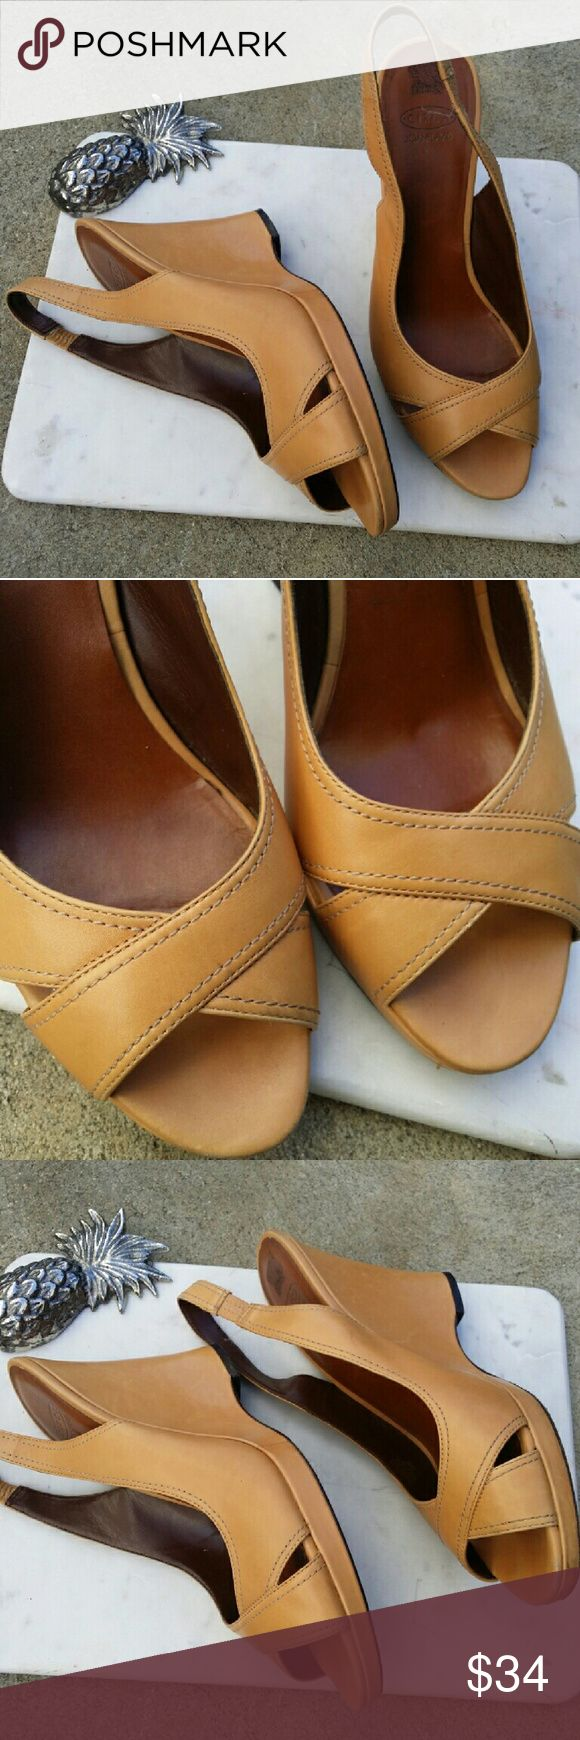 Circa Joan & David CJ LISSETTE Brown Leather Wedge Circa Joan & David CJ LISSETTE Brown Leather Wedge Heels Shoes sz 10 EUC LOVELY   Very small flaws.   Please see pictures for details Joan & David Shoes Wedges